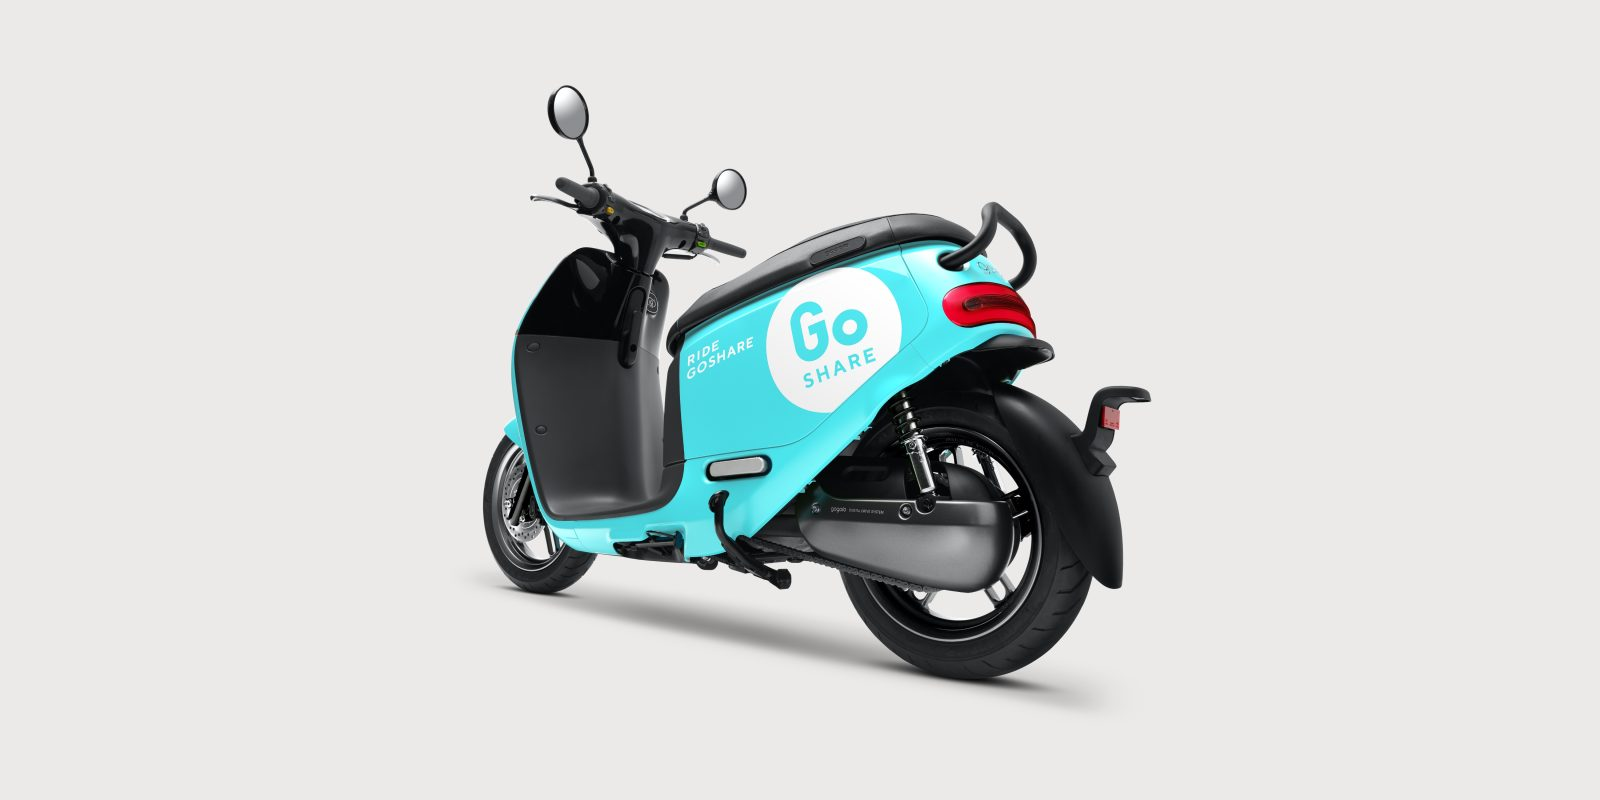 reputable site bc4f0 20be6 Gogoro announces its GoShare battery-swapping electric scooter rental  network